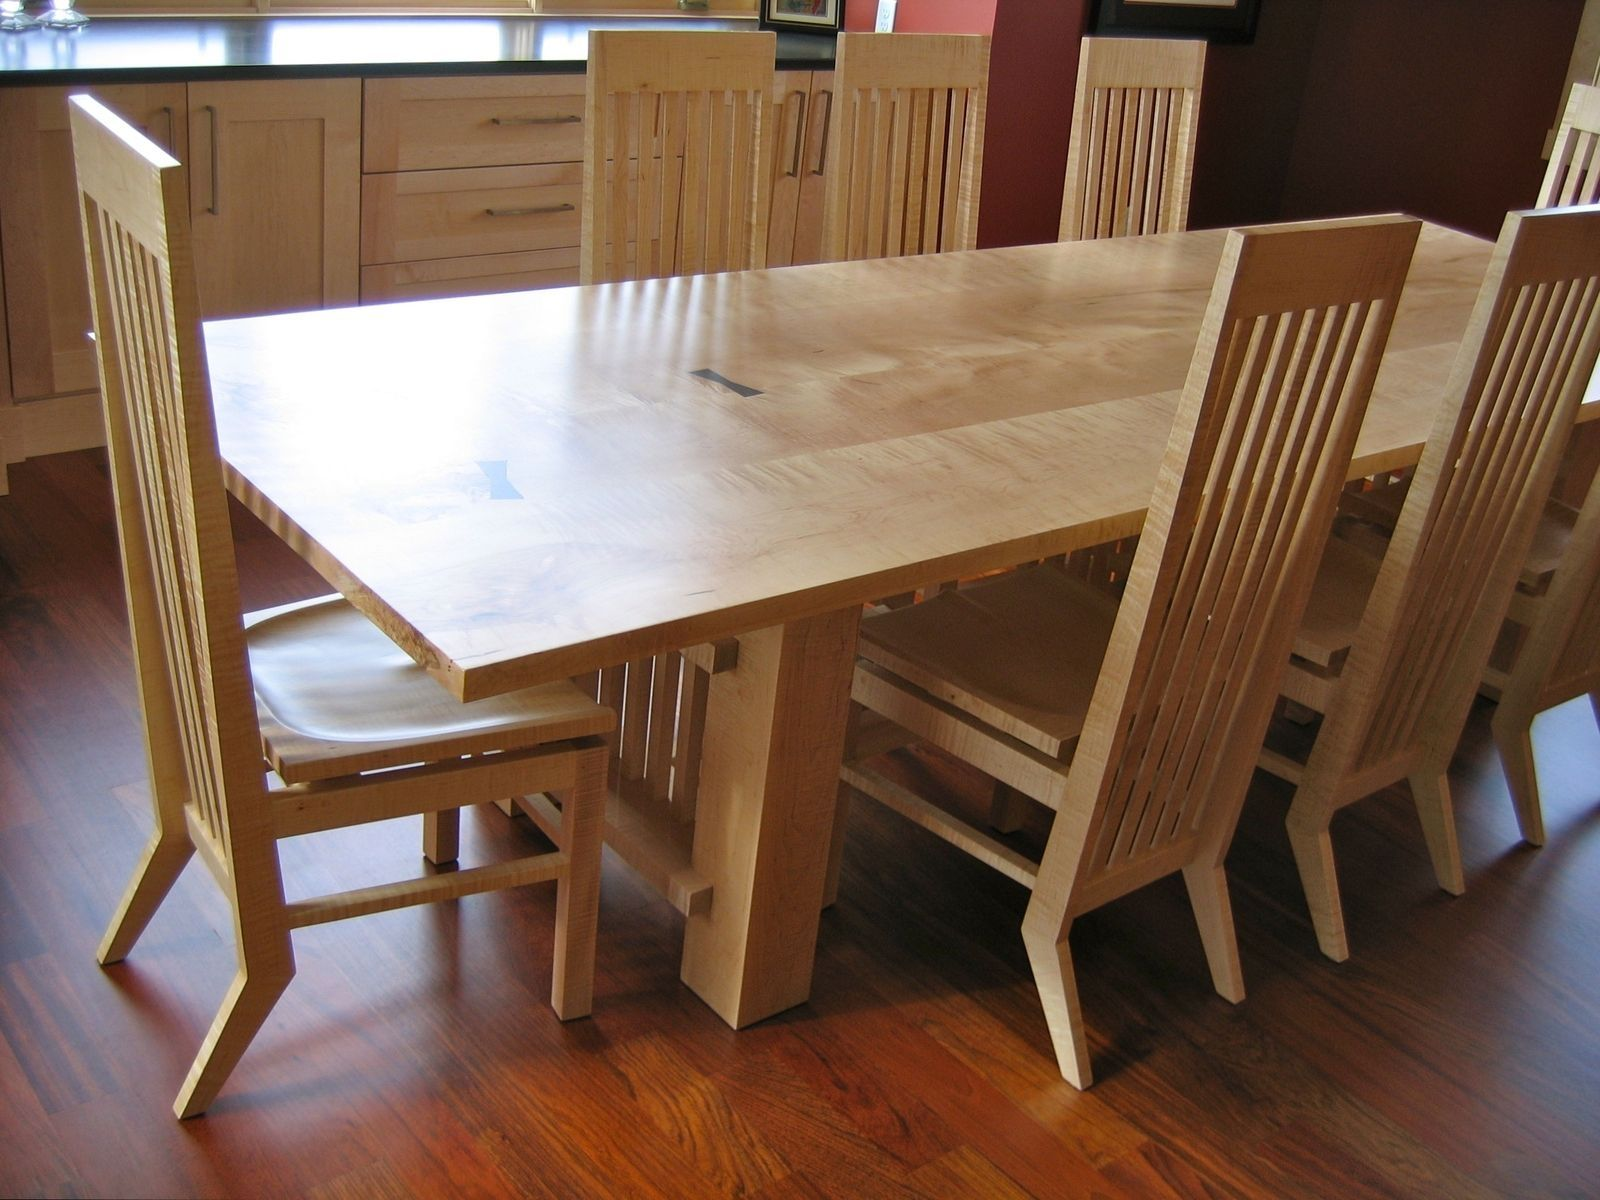 Solid Maple Dining Room Table And Chairs | http://enricbataller.net ...